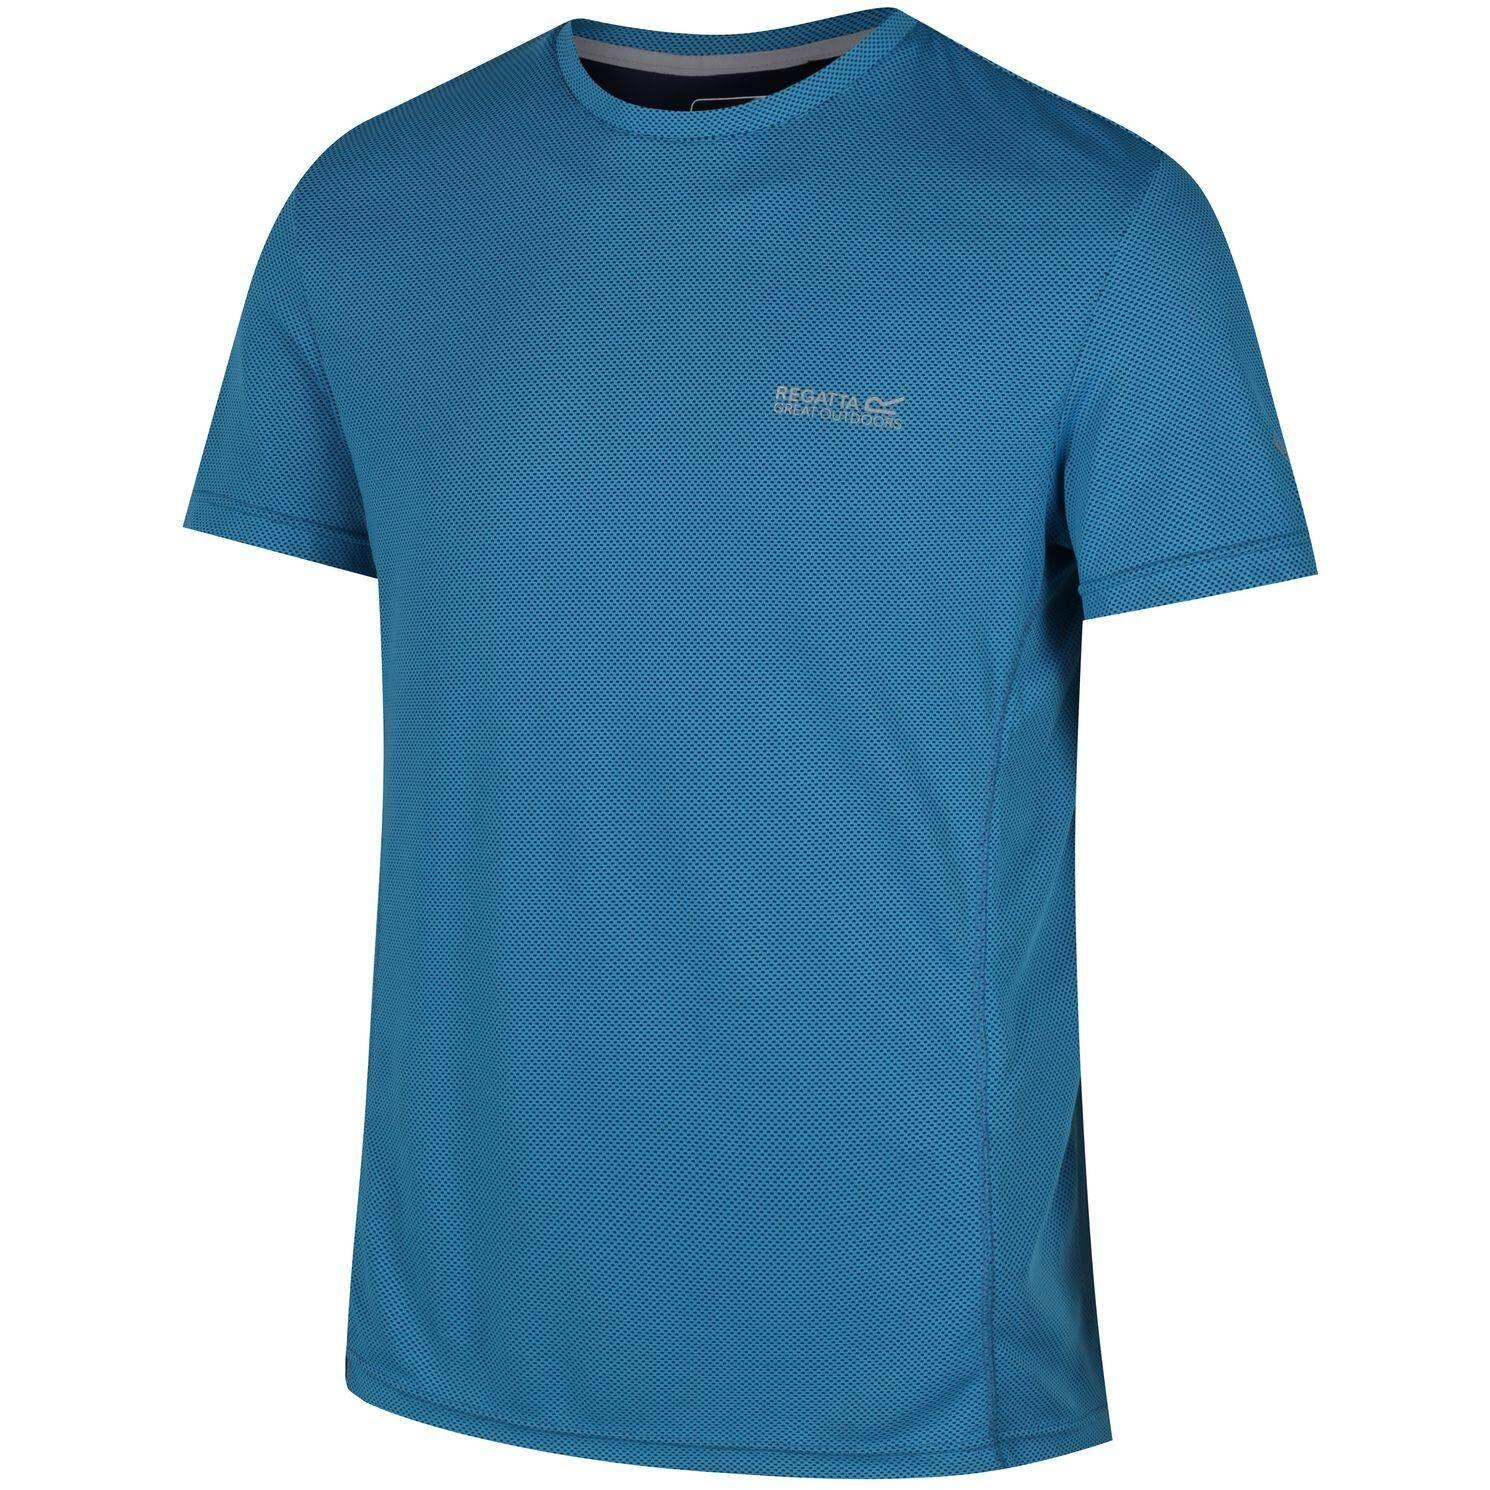 Regatta Funktions-T-Shirt Hyper-Cool blau